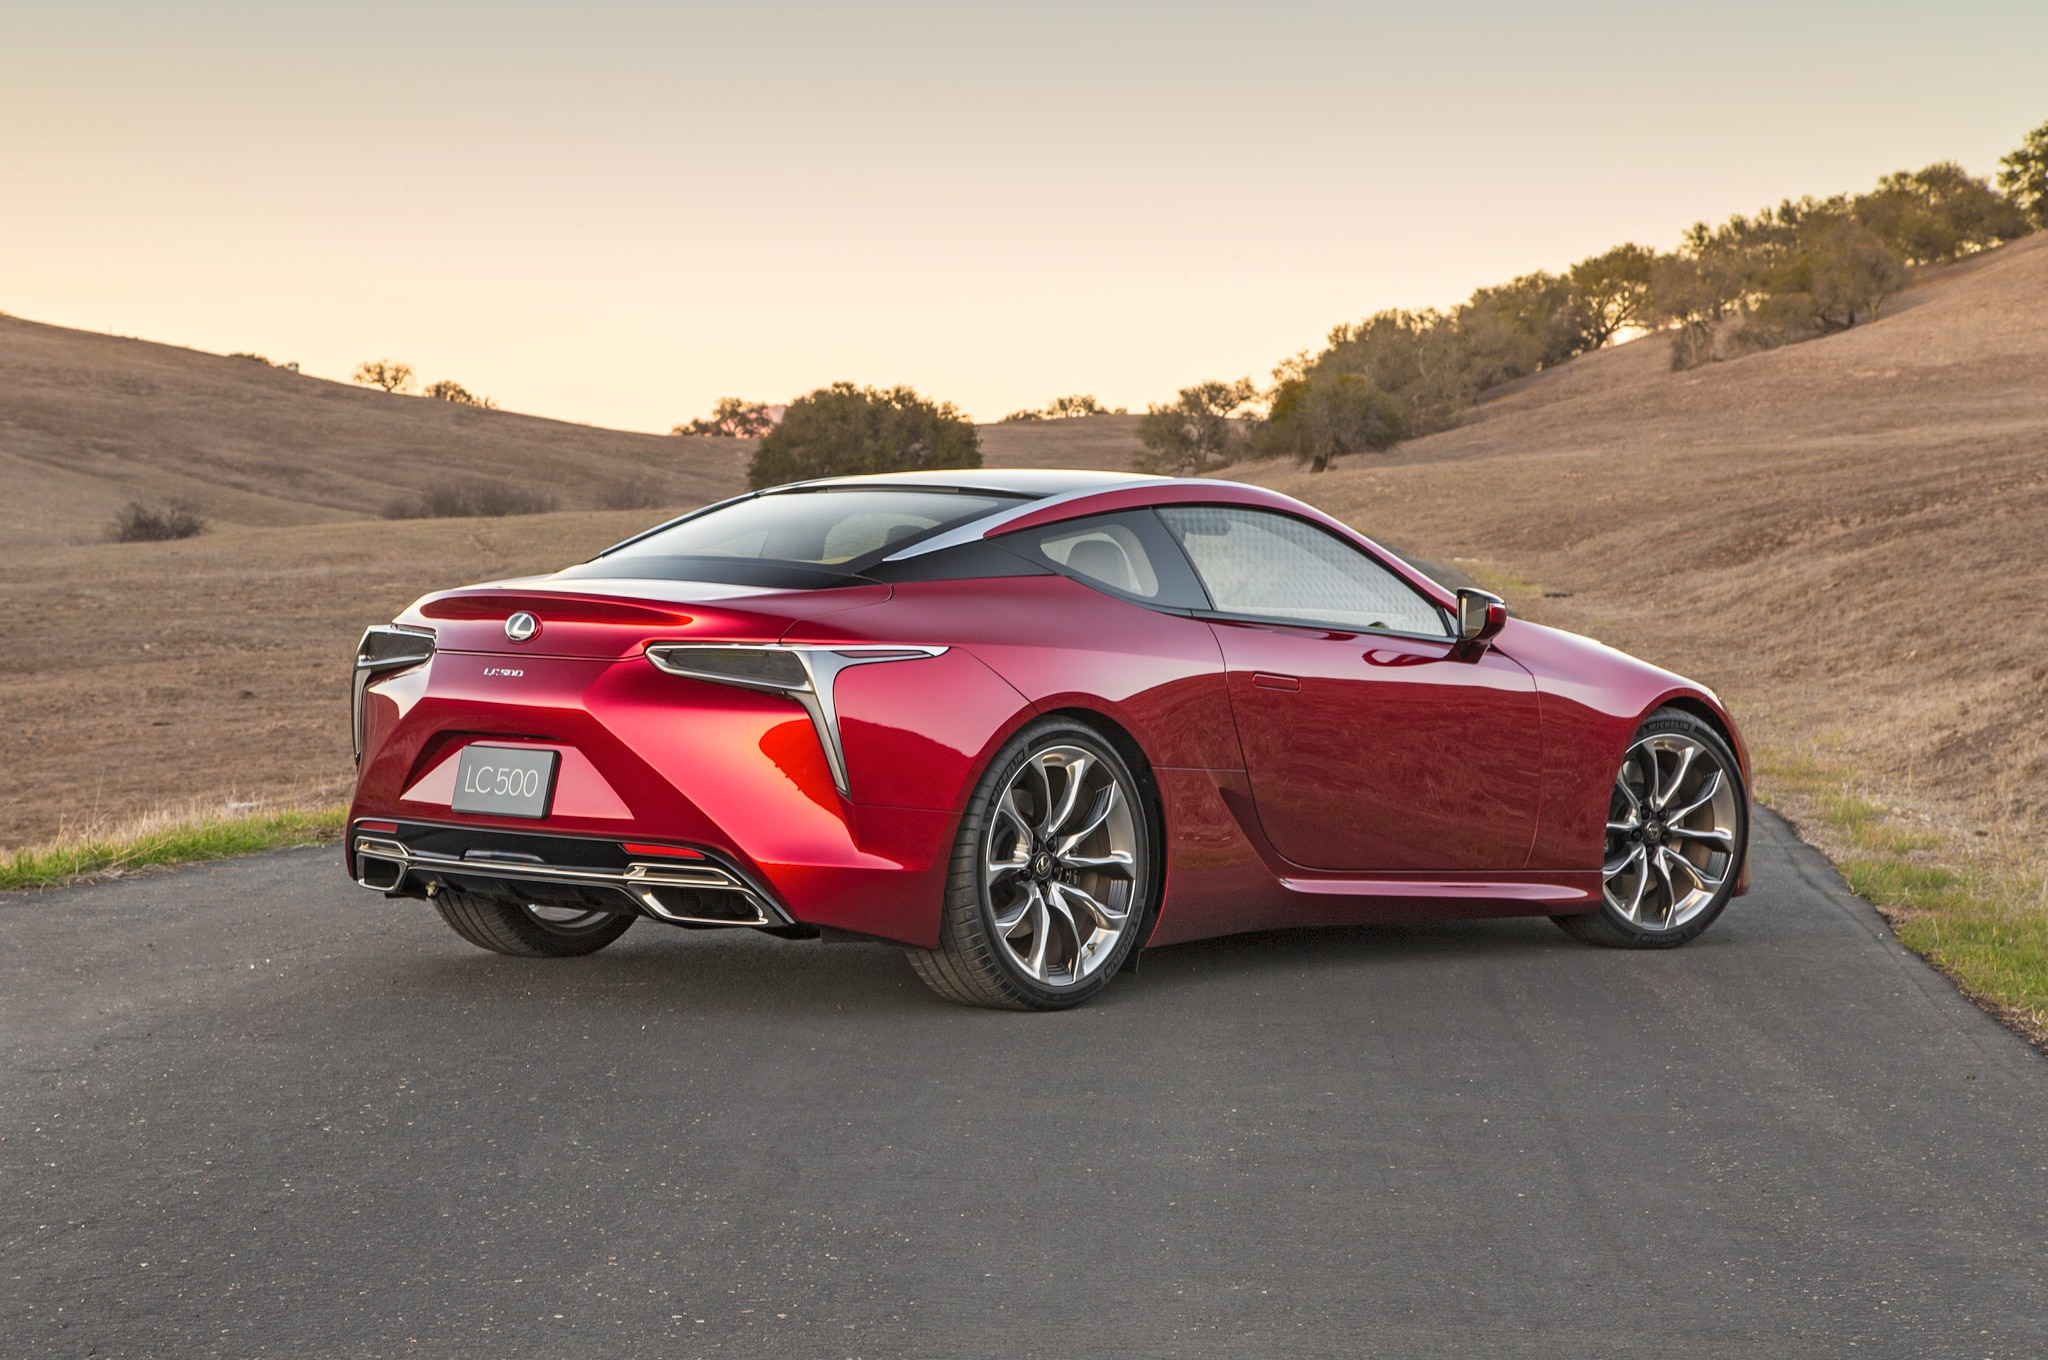 2018 lexus lc. Wonderful 2018 Show More Inside 2018 Lexus Lc